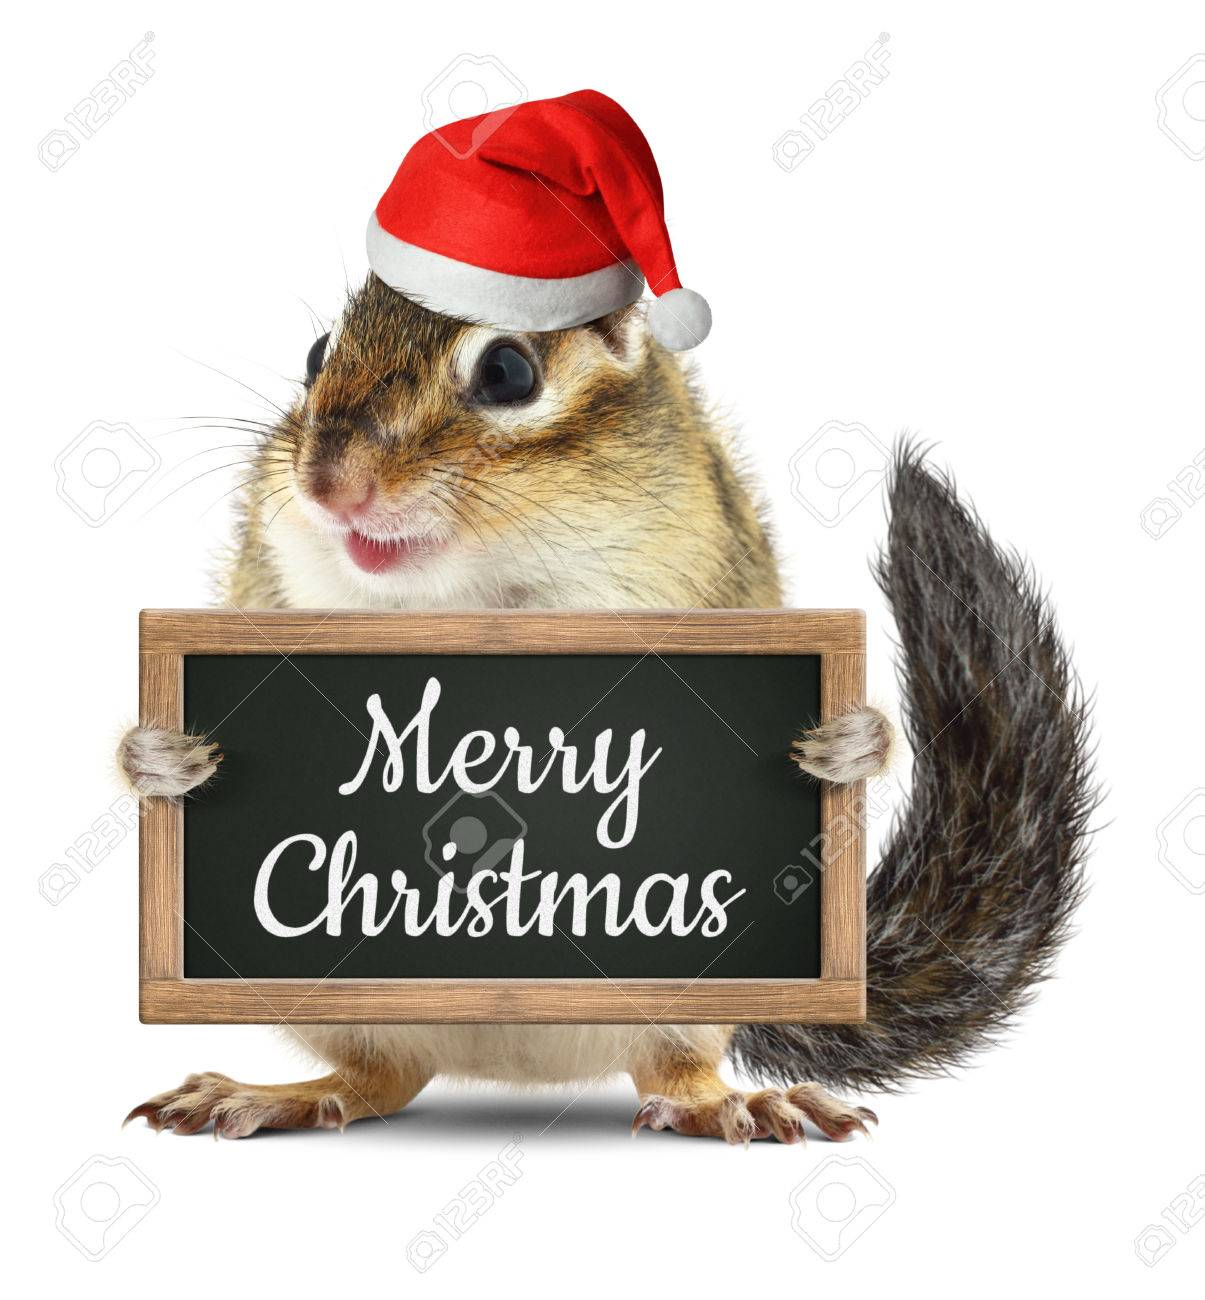 Christmas Squirrel.Funny Santa Claus Squirrel Hold Blackboard With Merry Christmas